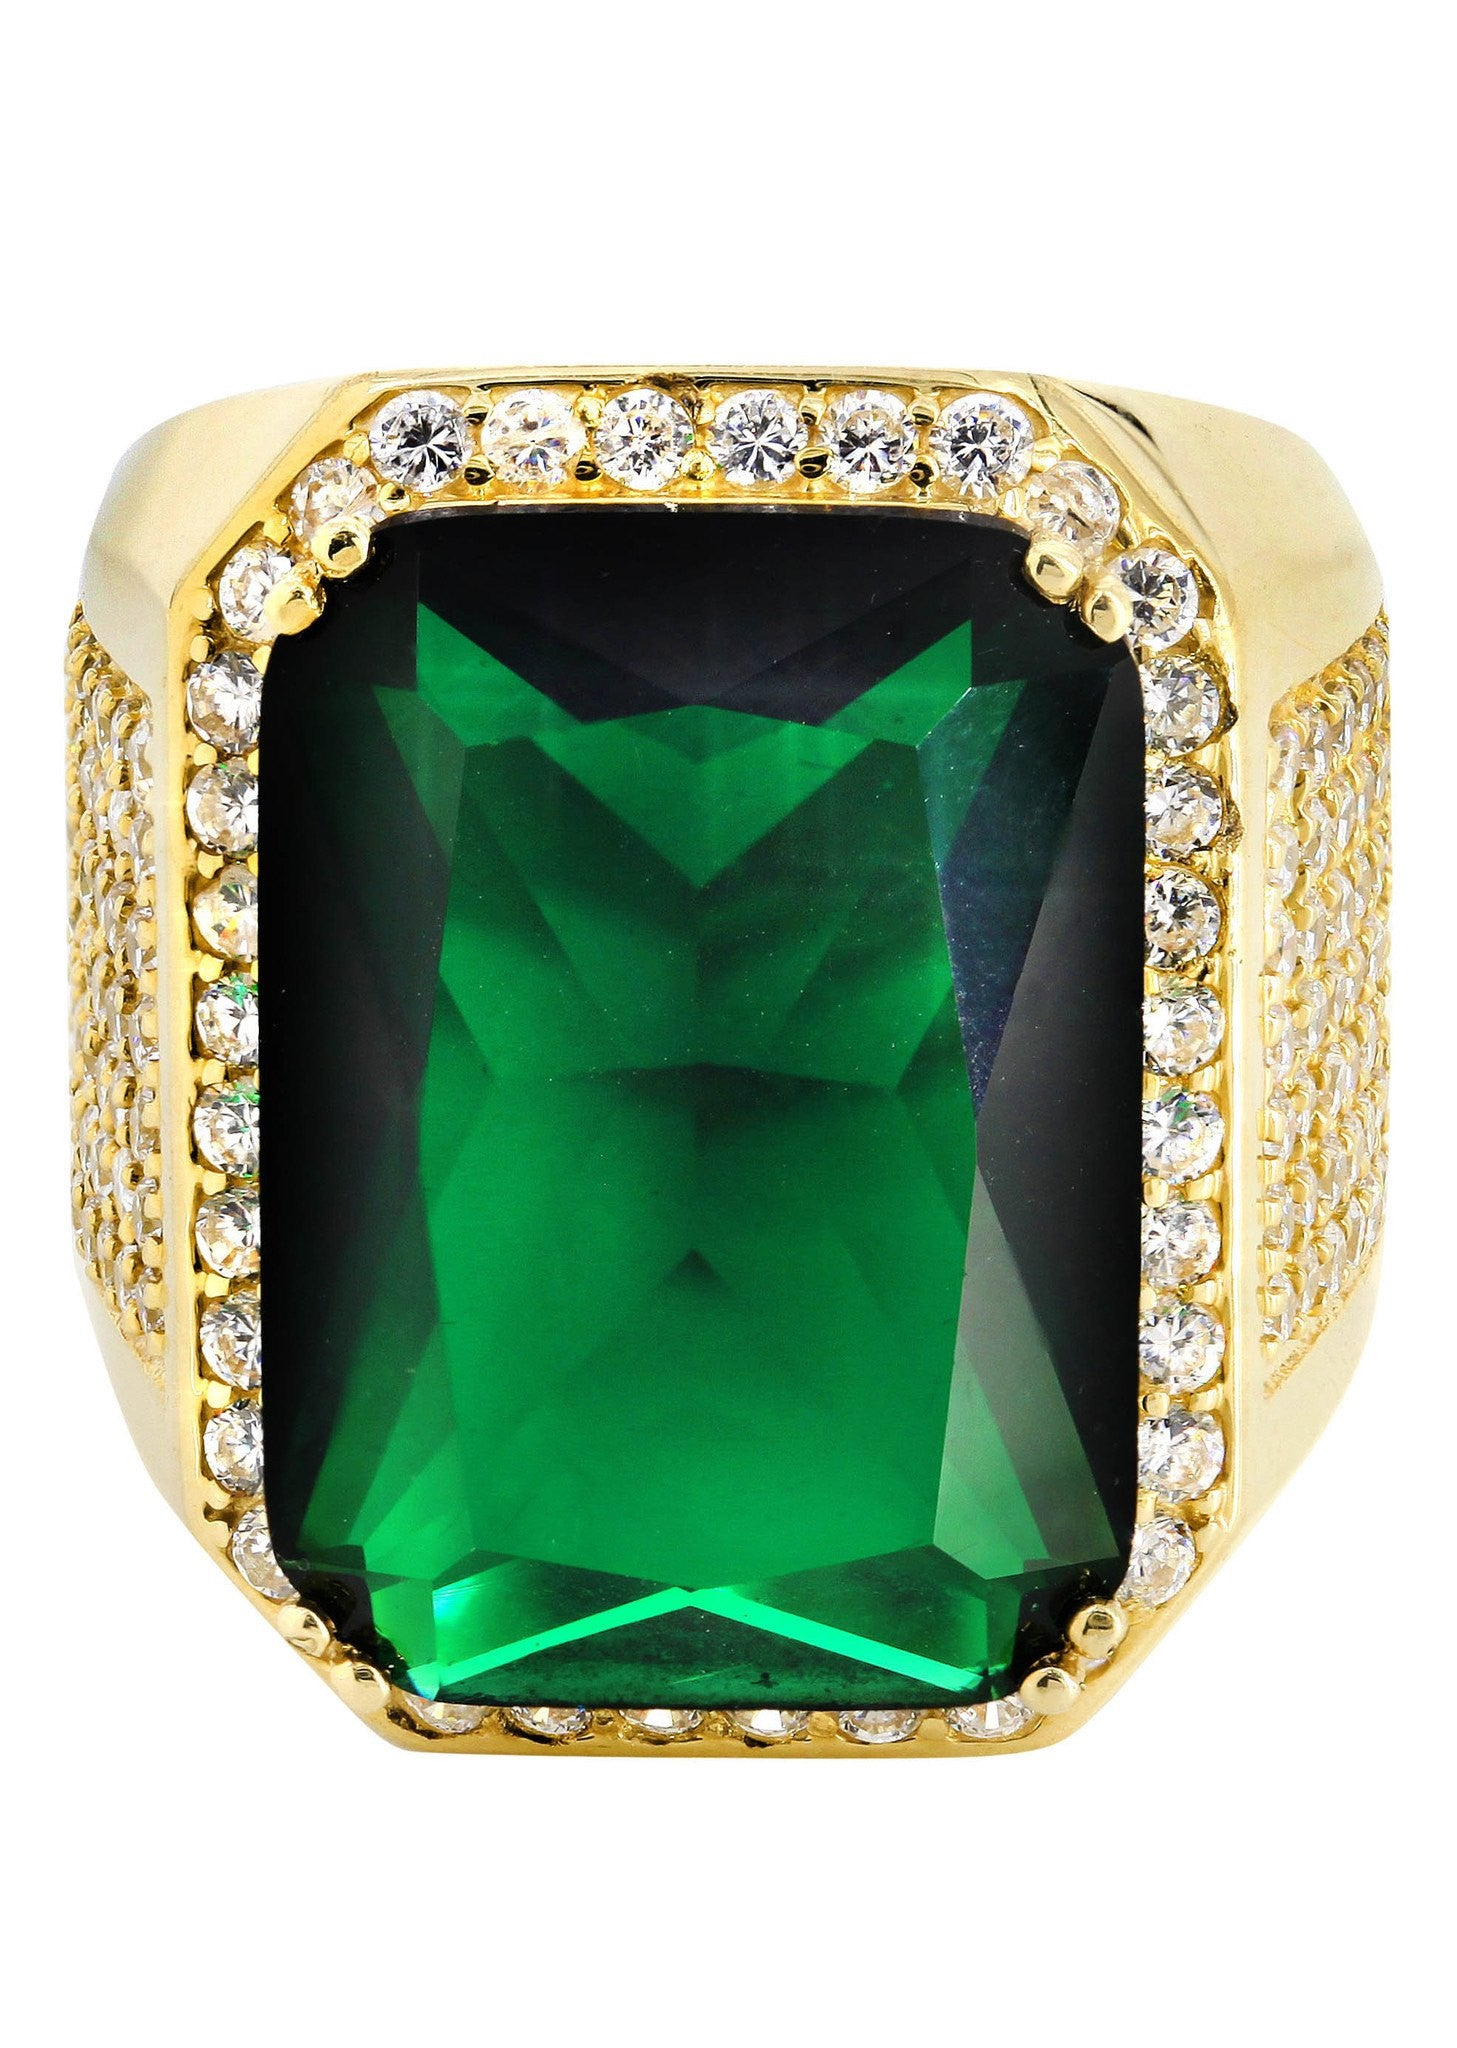 emerald cz 10k yellow gold mens ring 21 1 grams